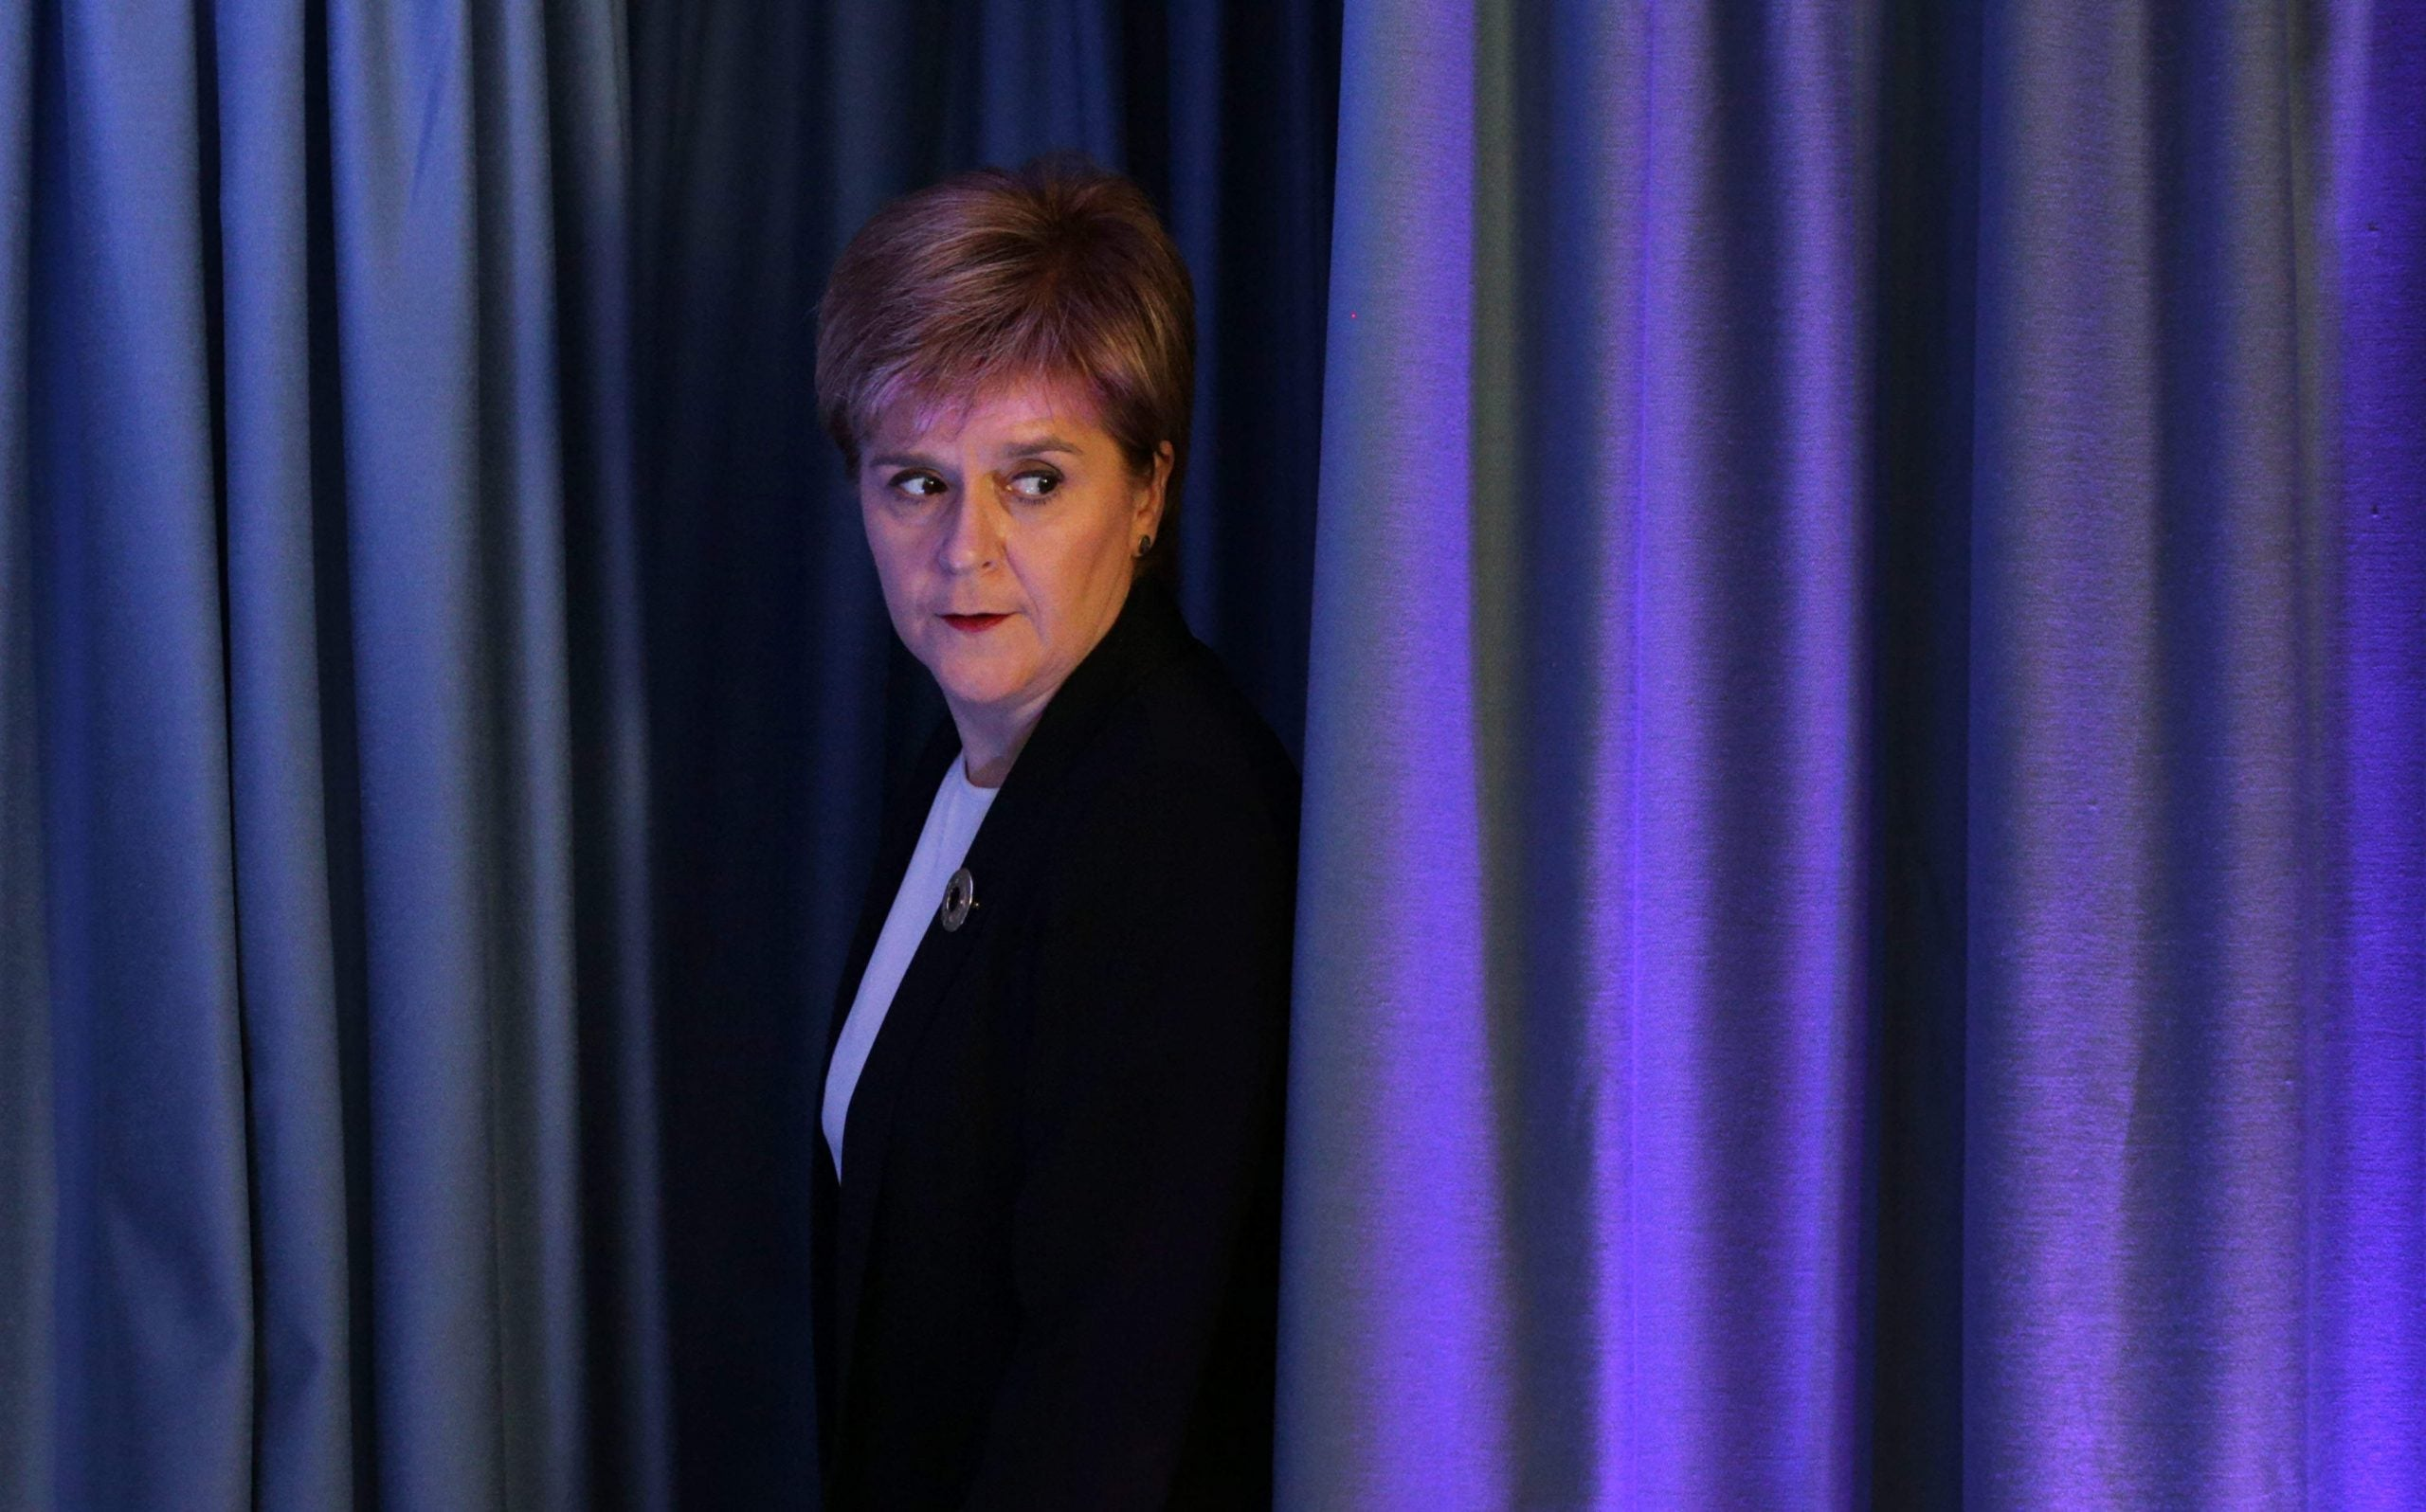 Nicola Sturgeon and the SNP's echoes of New Labour